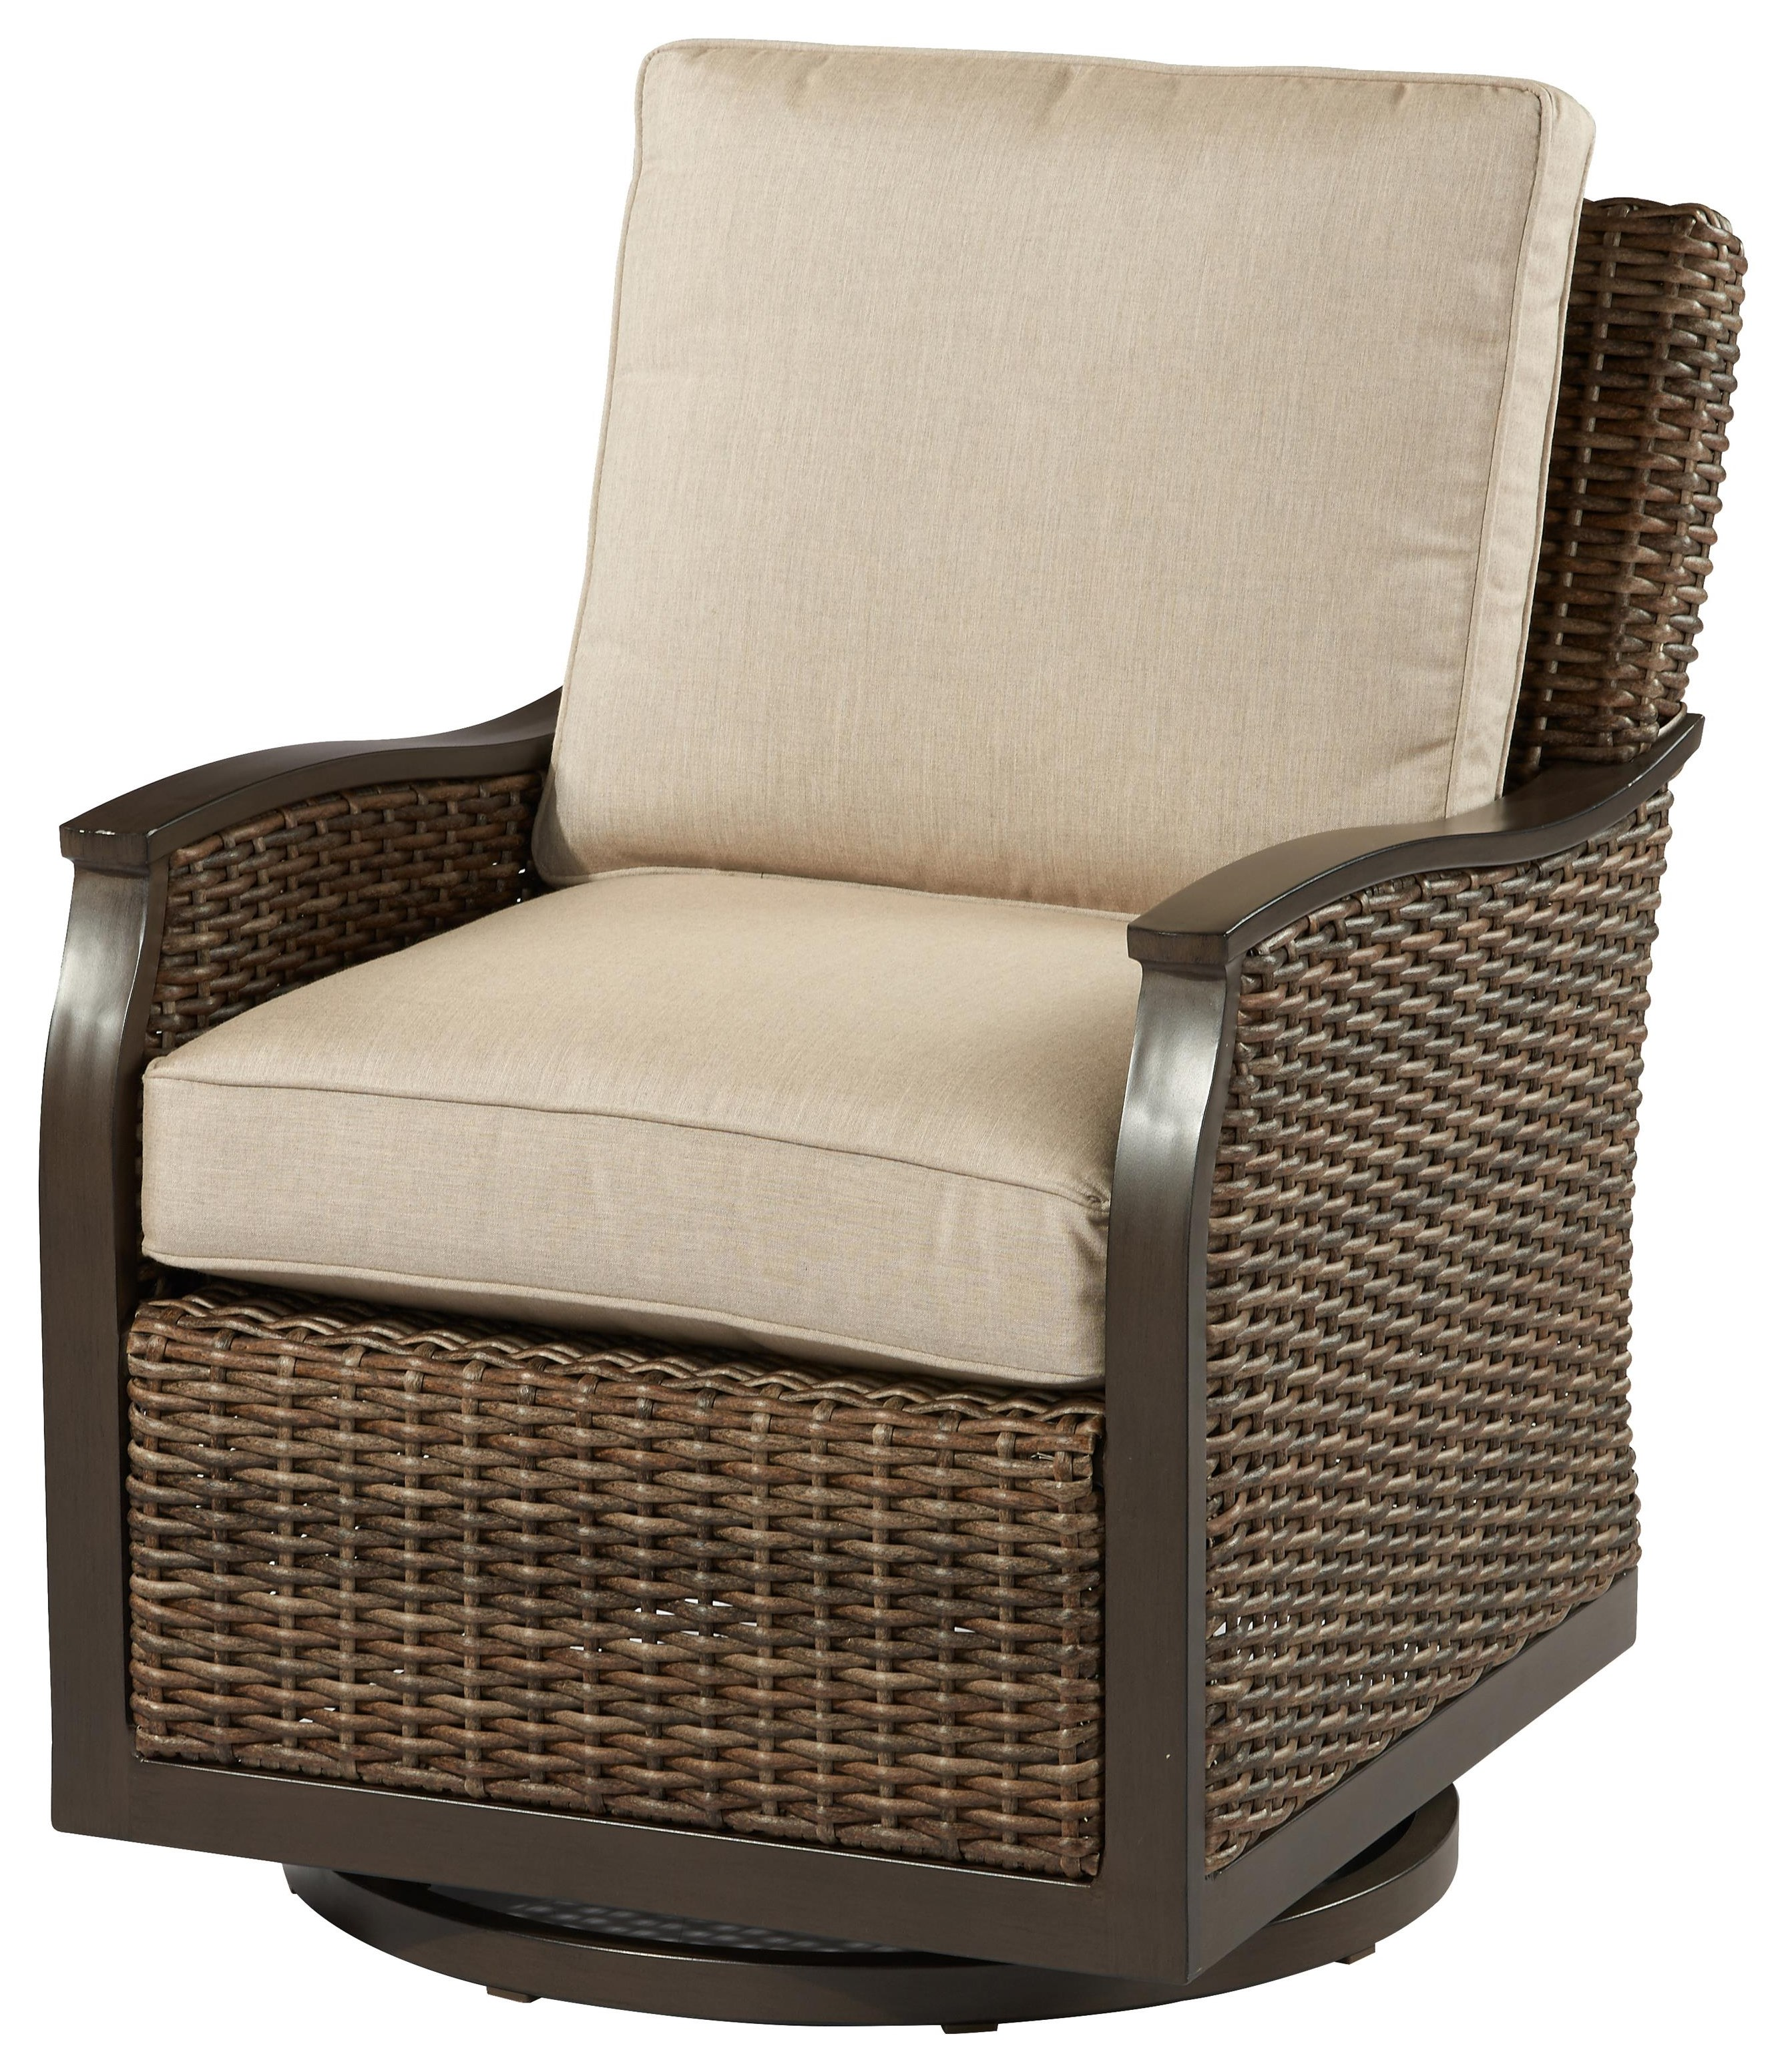 Trenton Swivel Glider by Apricity Outdoor at Johnny Janosik